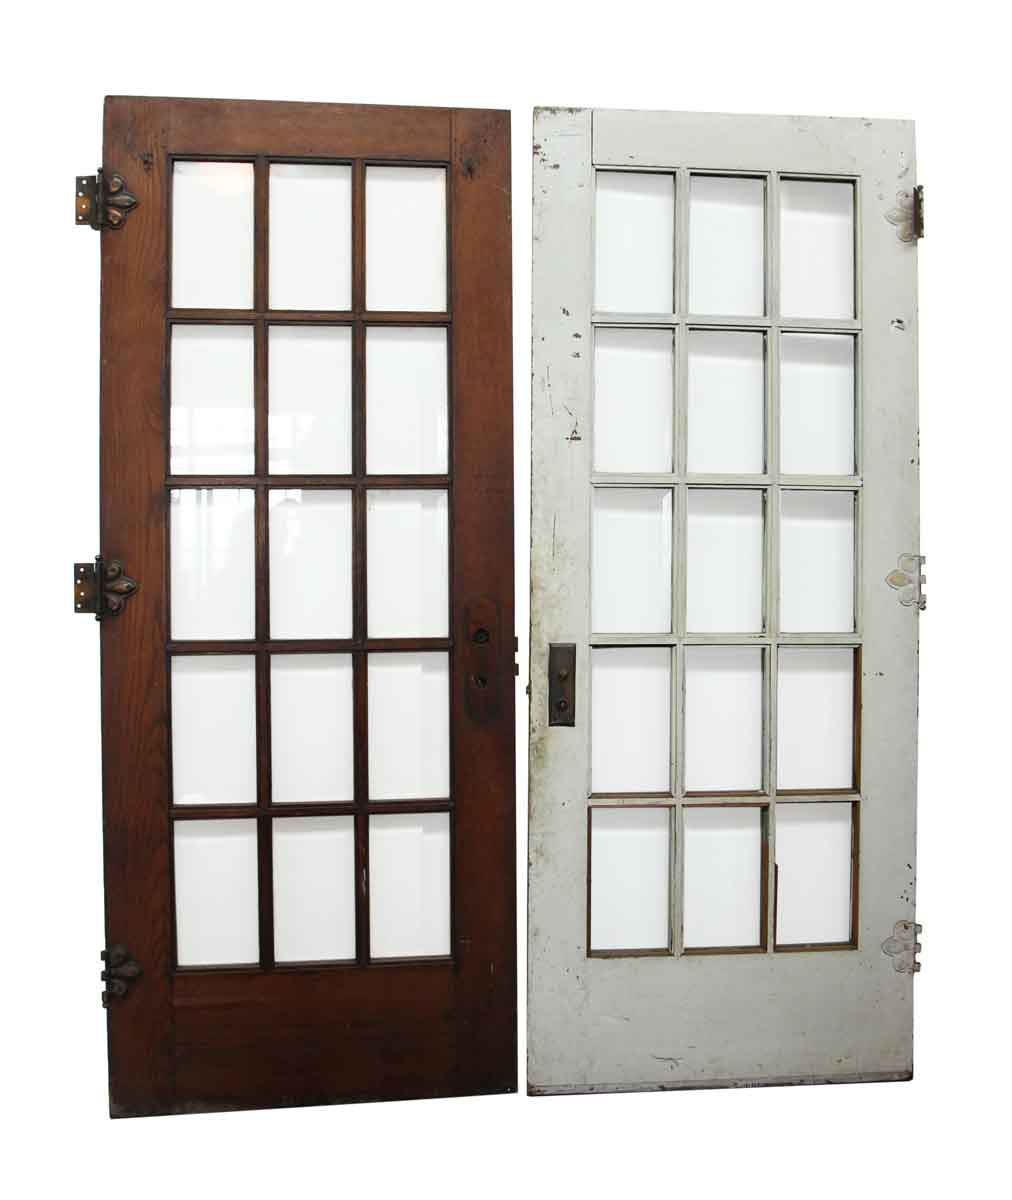 15 beveled glass panel french door olde good things 15 beveled glass panel french door planetlyrics Gallery